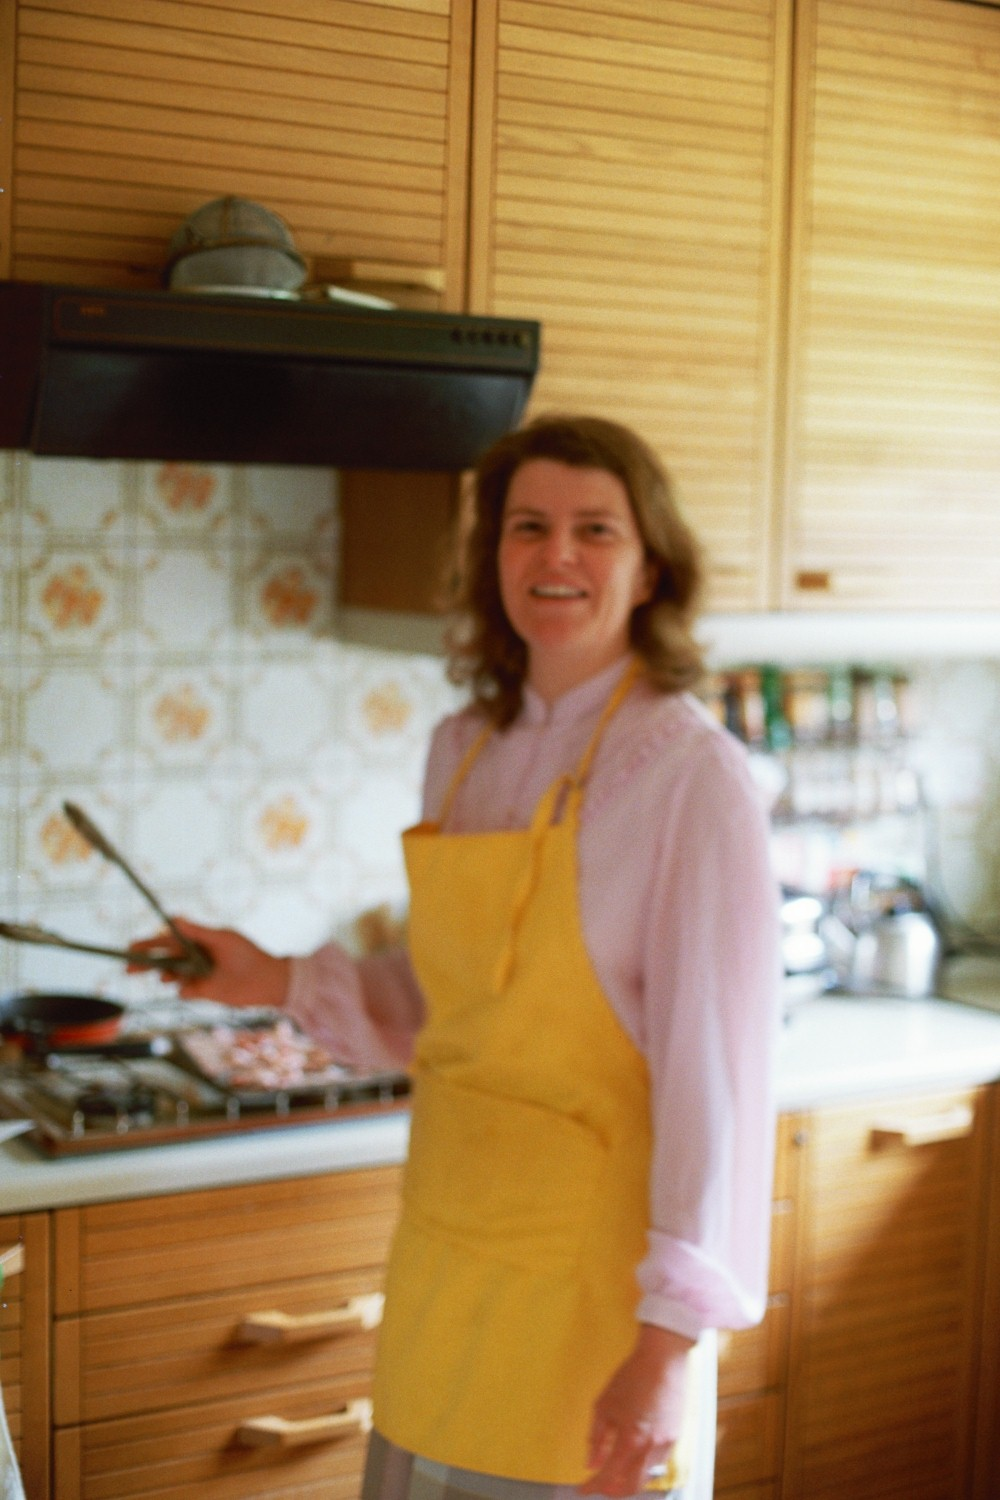 Lori Shearer with tongs